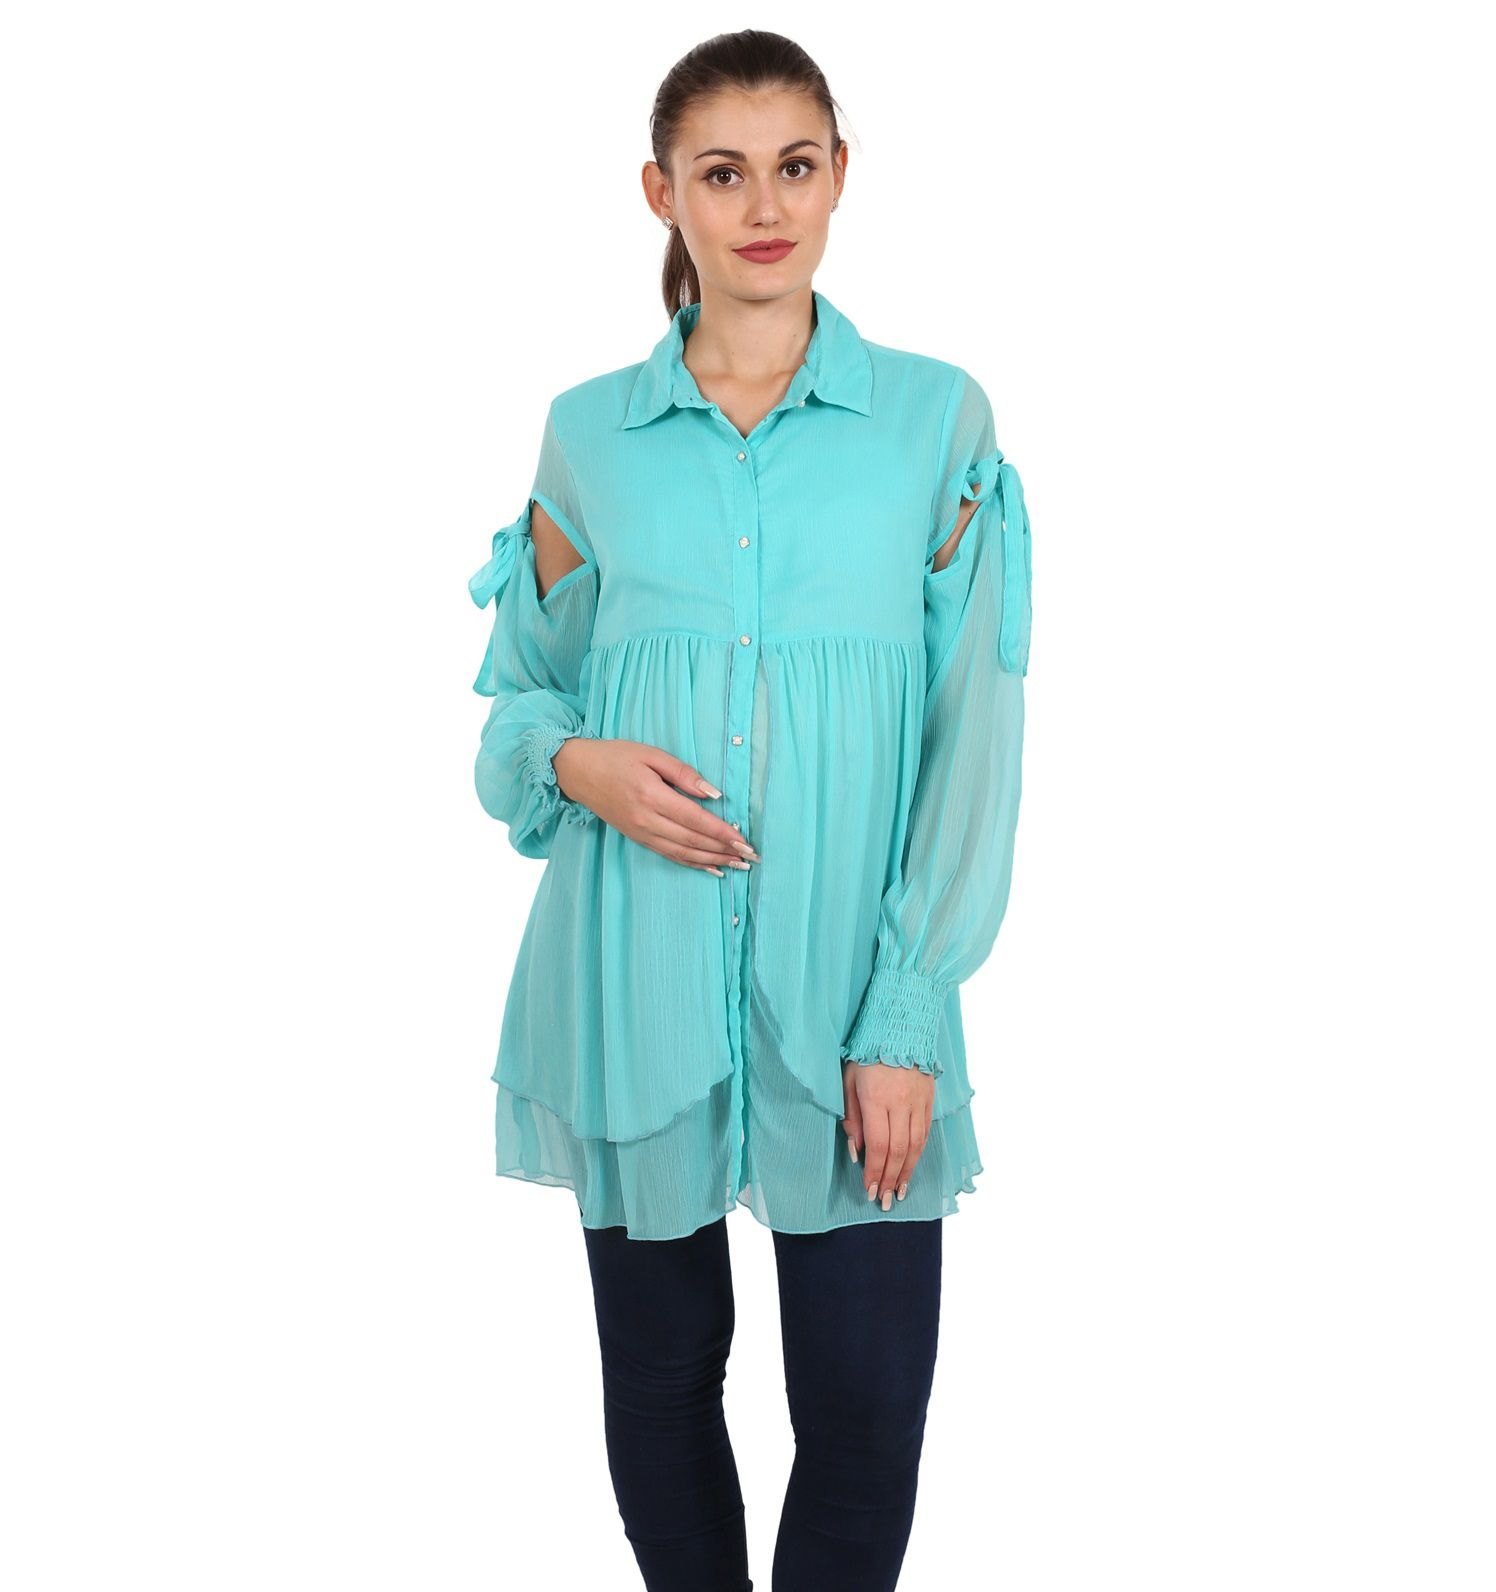 9teenAGAIN Chiffon Maternity Wear Blue Tops